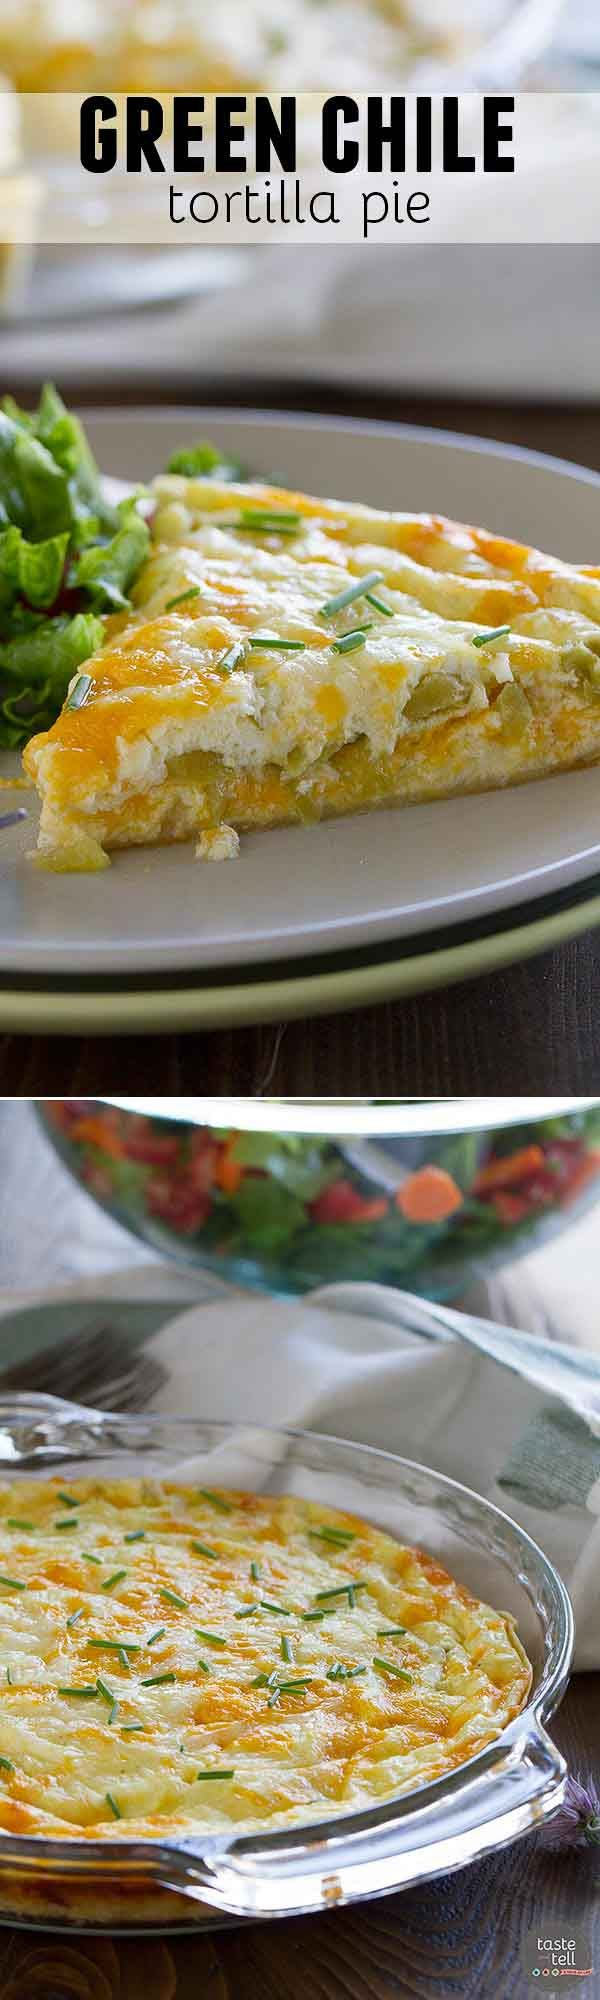 This Green Chile Tortilla Pie is crowd pleasing and super easy and a little unconventional by using a tortilla as the crust.